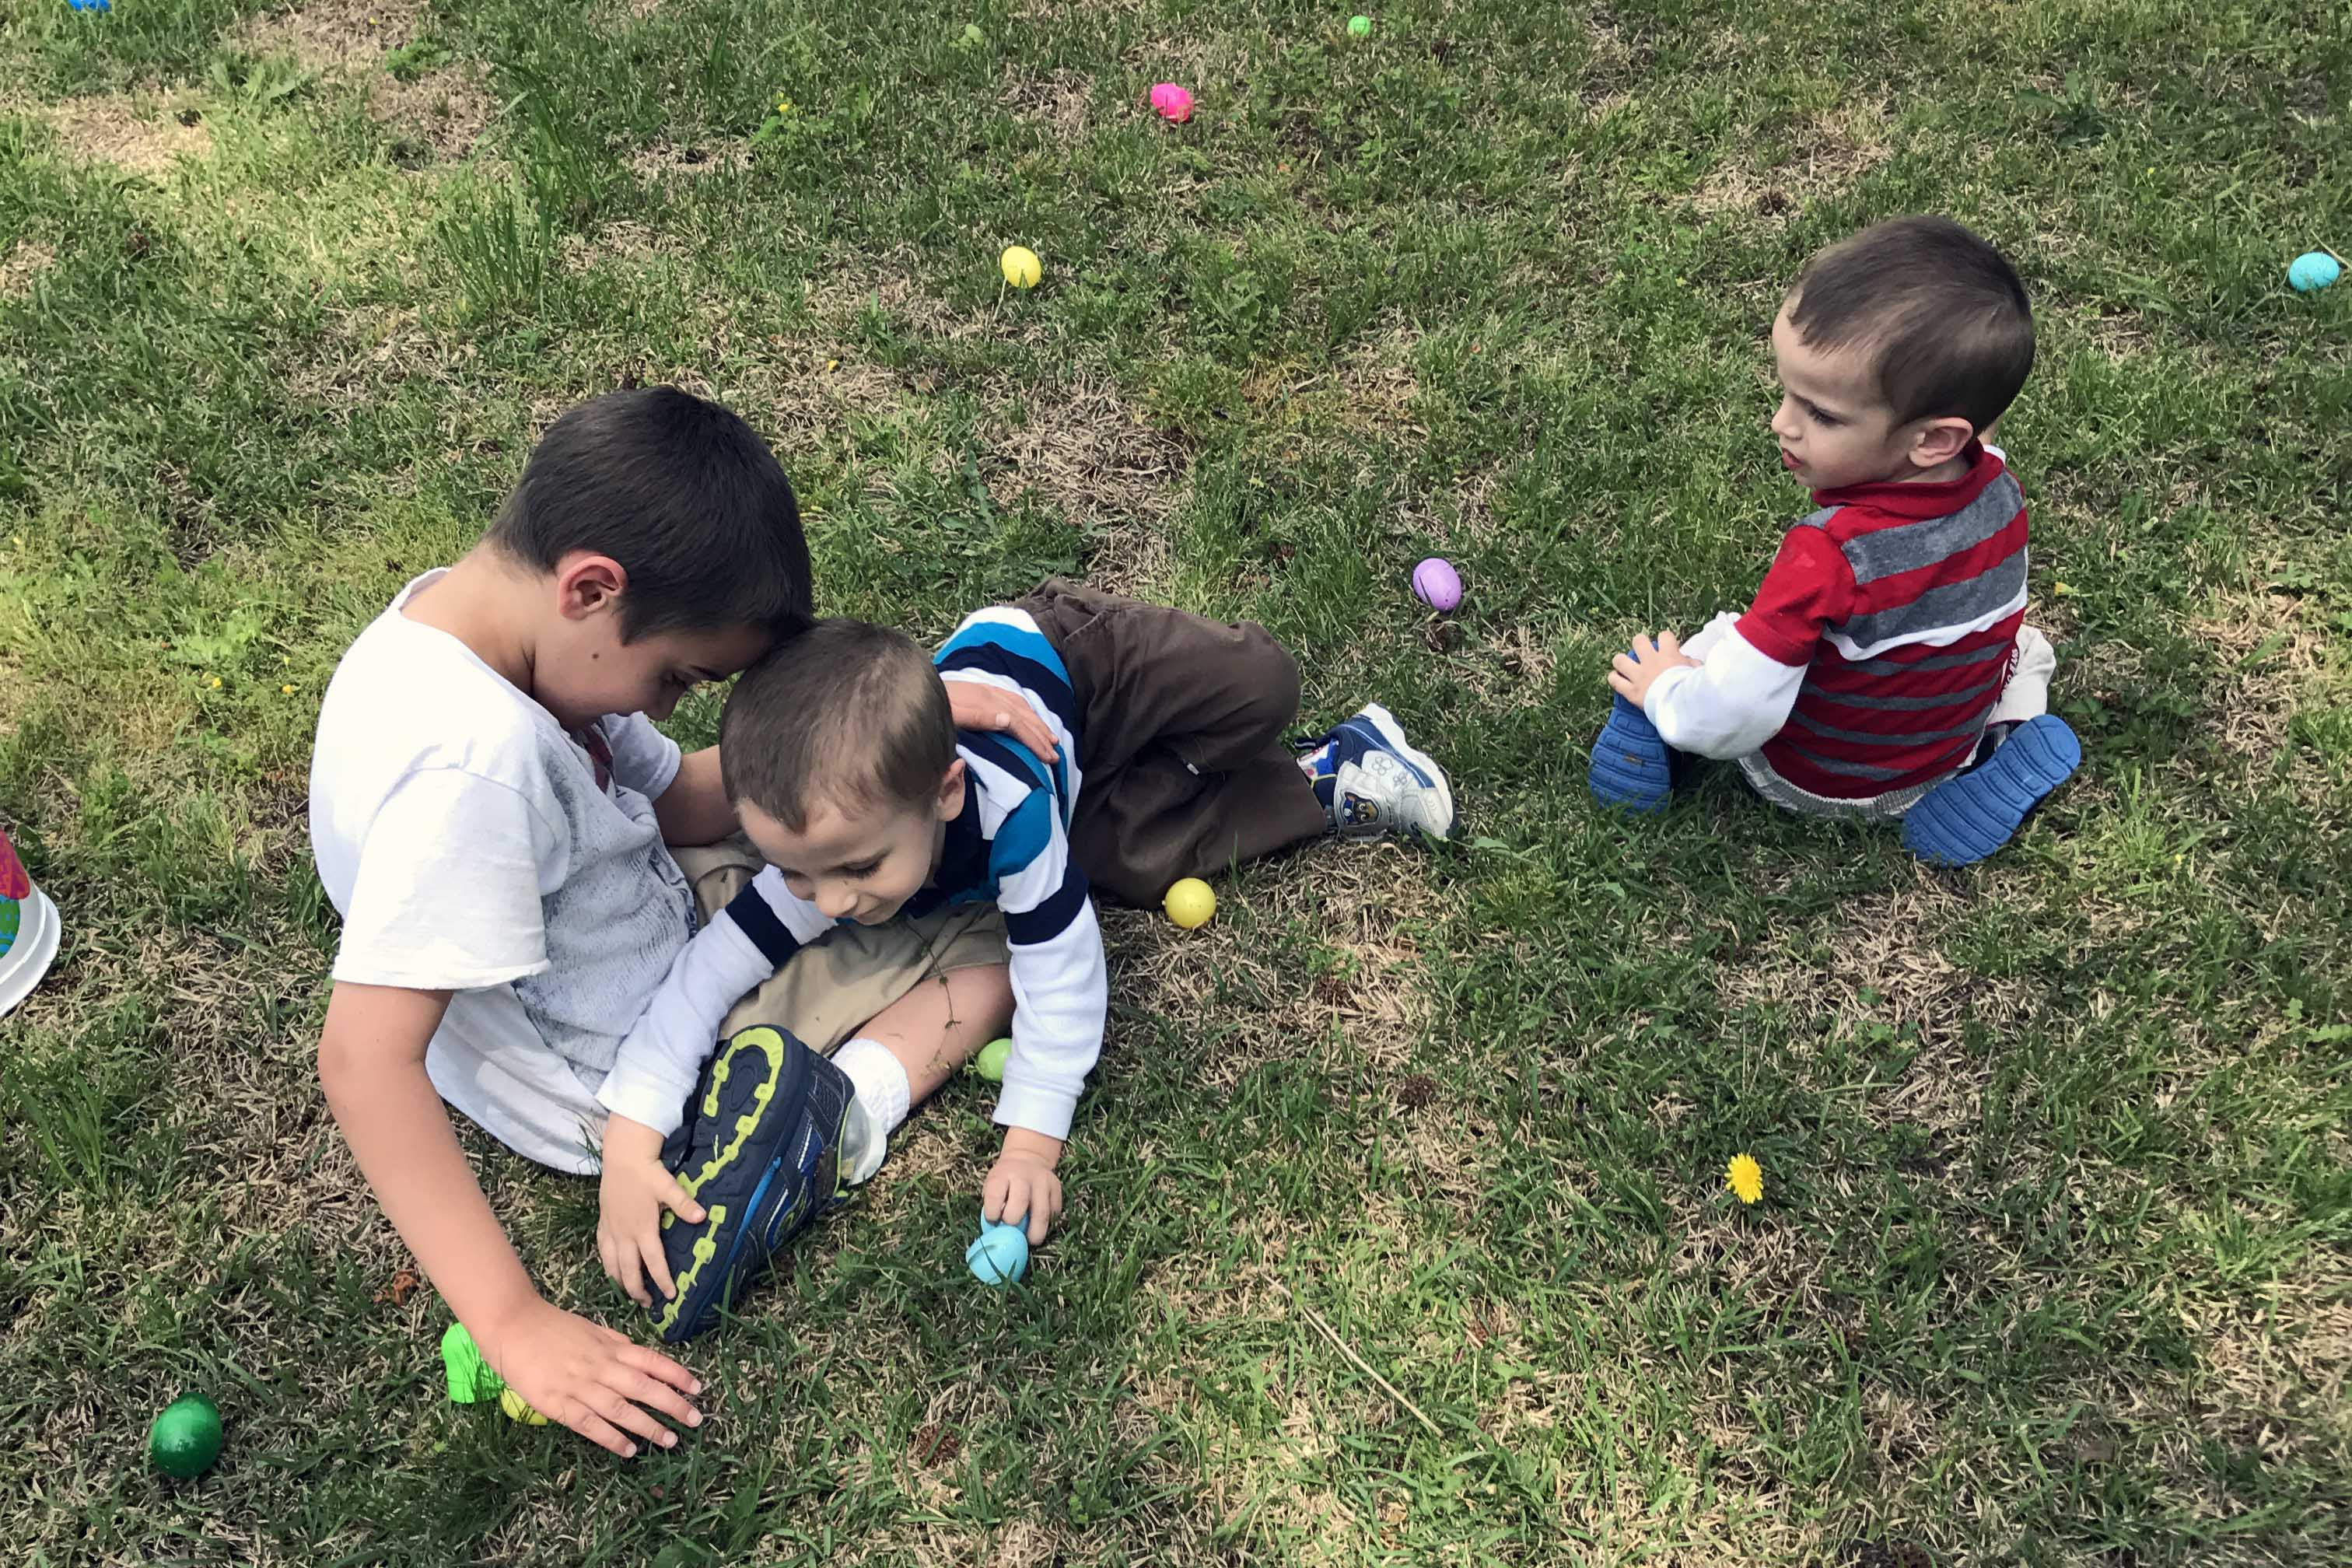 boys hunting for easter eggs on lawn